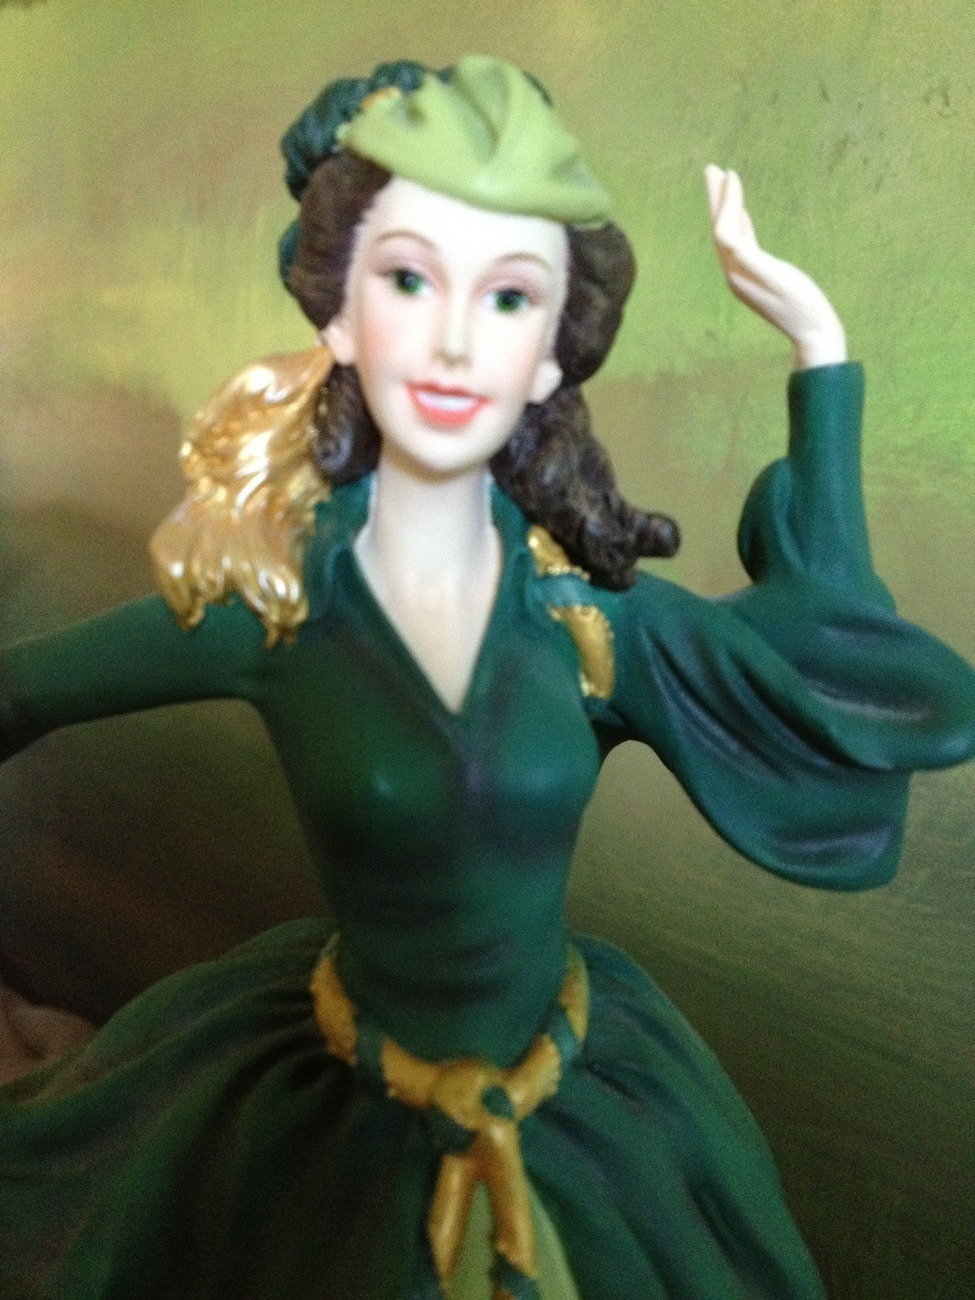 San Francisco Music Box Co - Scarlett in Green Dress Gone With the Wind